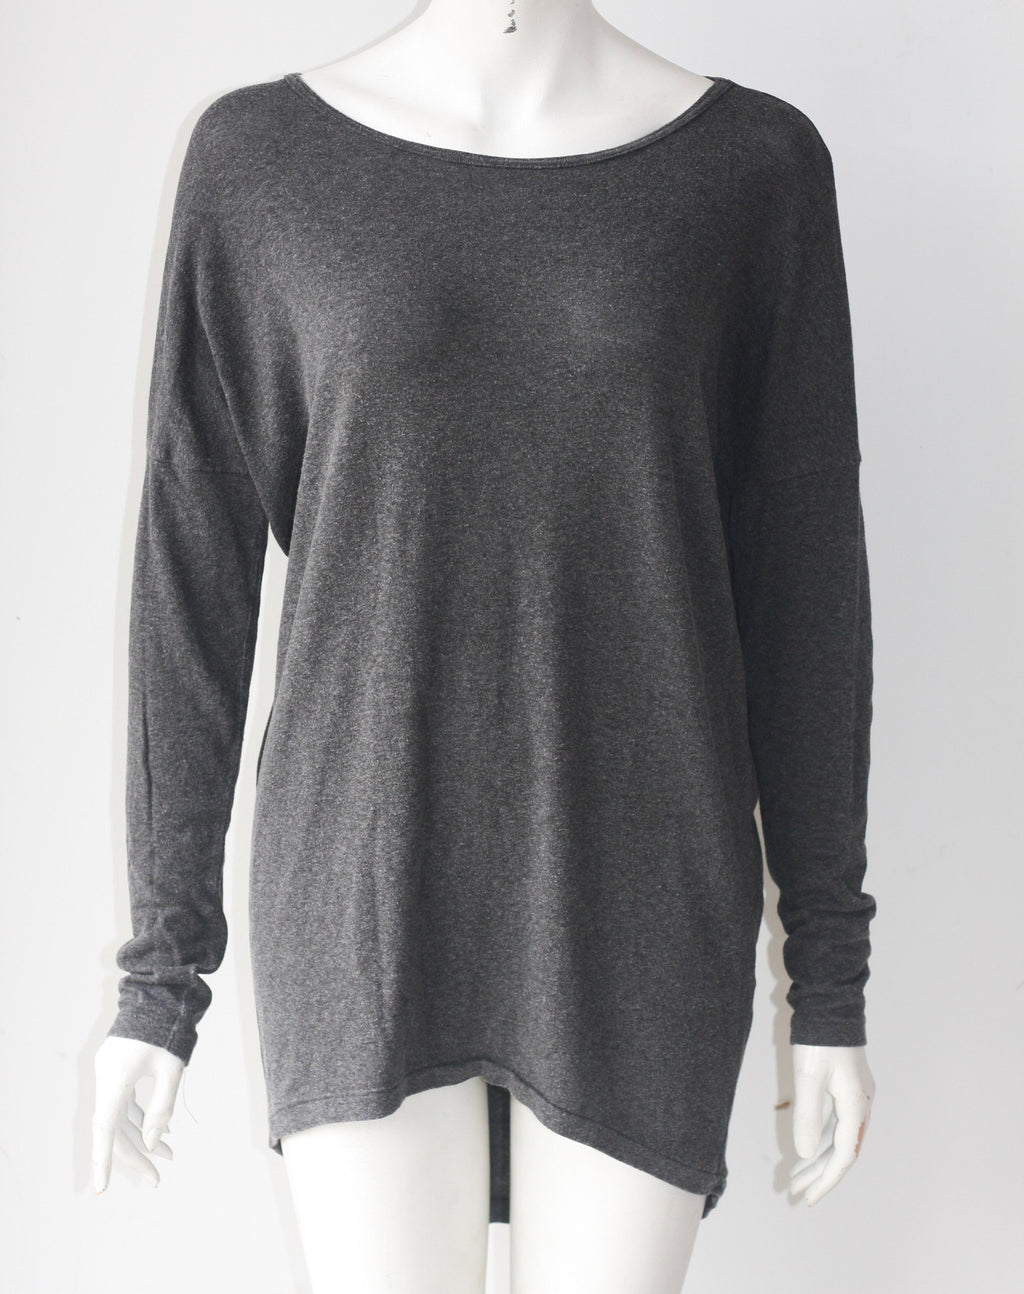 Oak & Fort Grey Long Sleeve Round Neck Sweater Shirt - Joyce's Closet  - 1